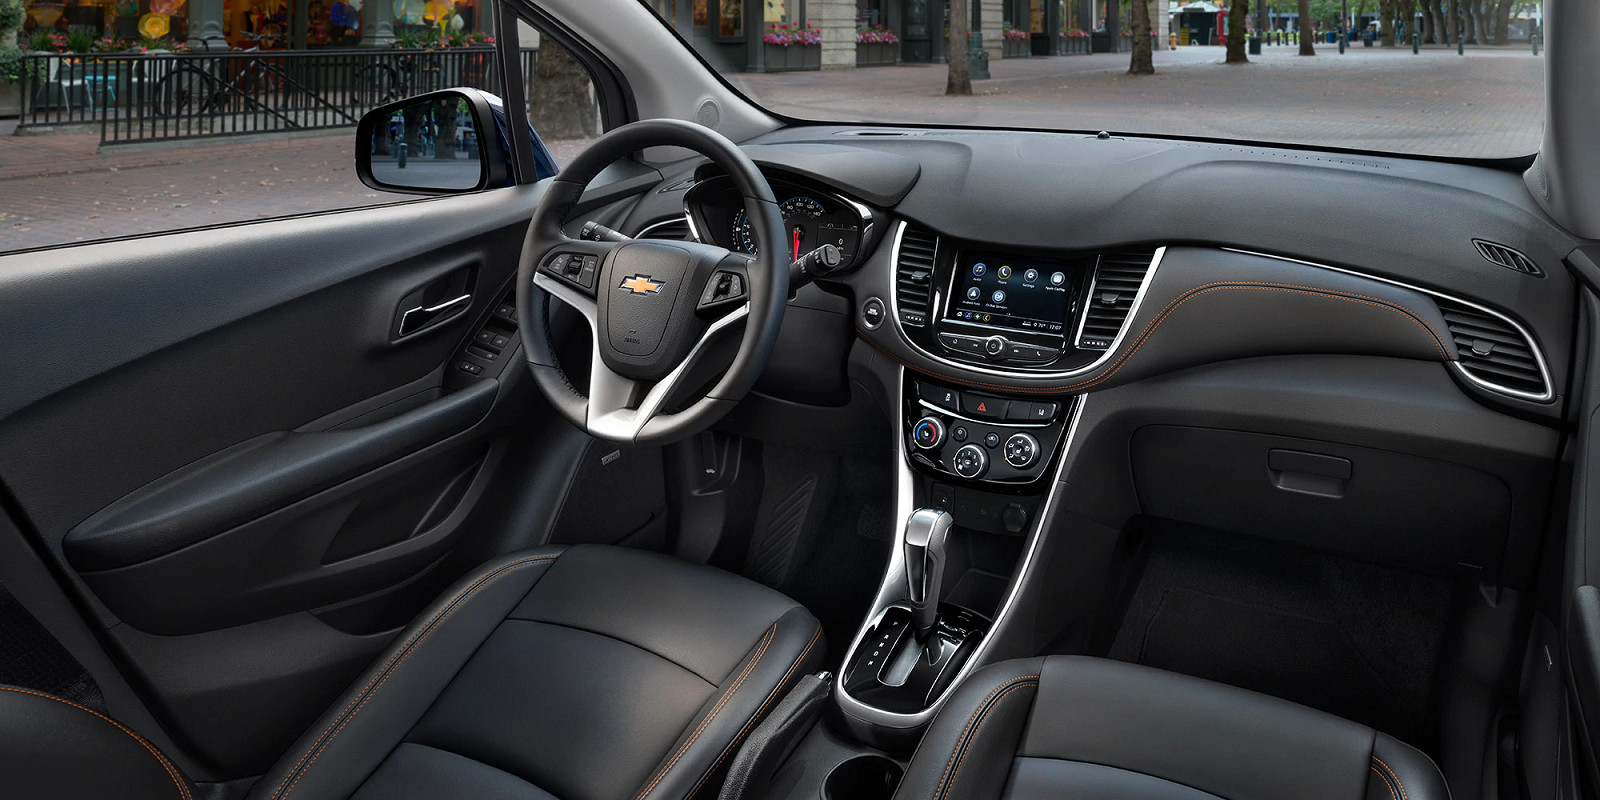 Cabin of the 2020 Chevrolet Trax